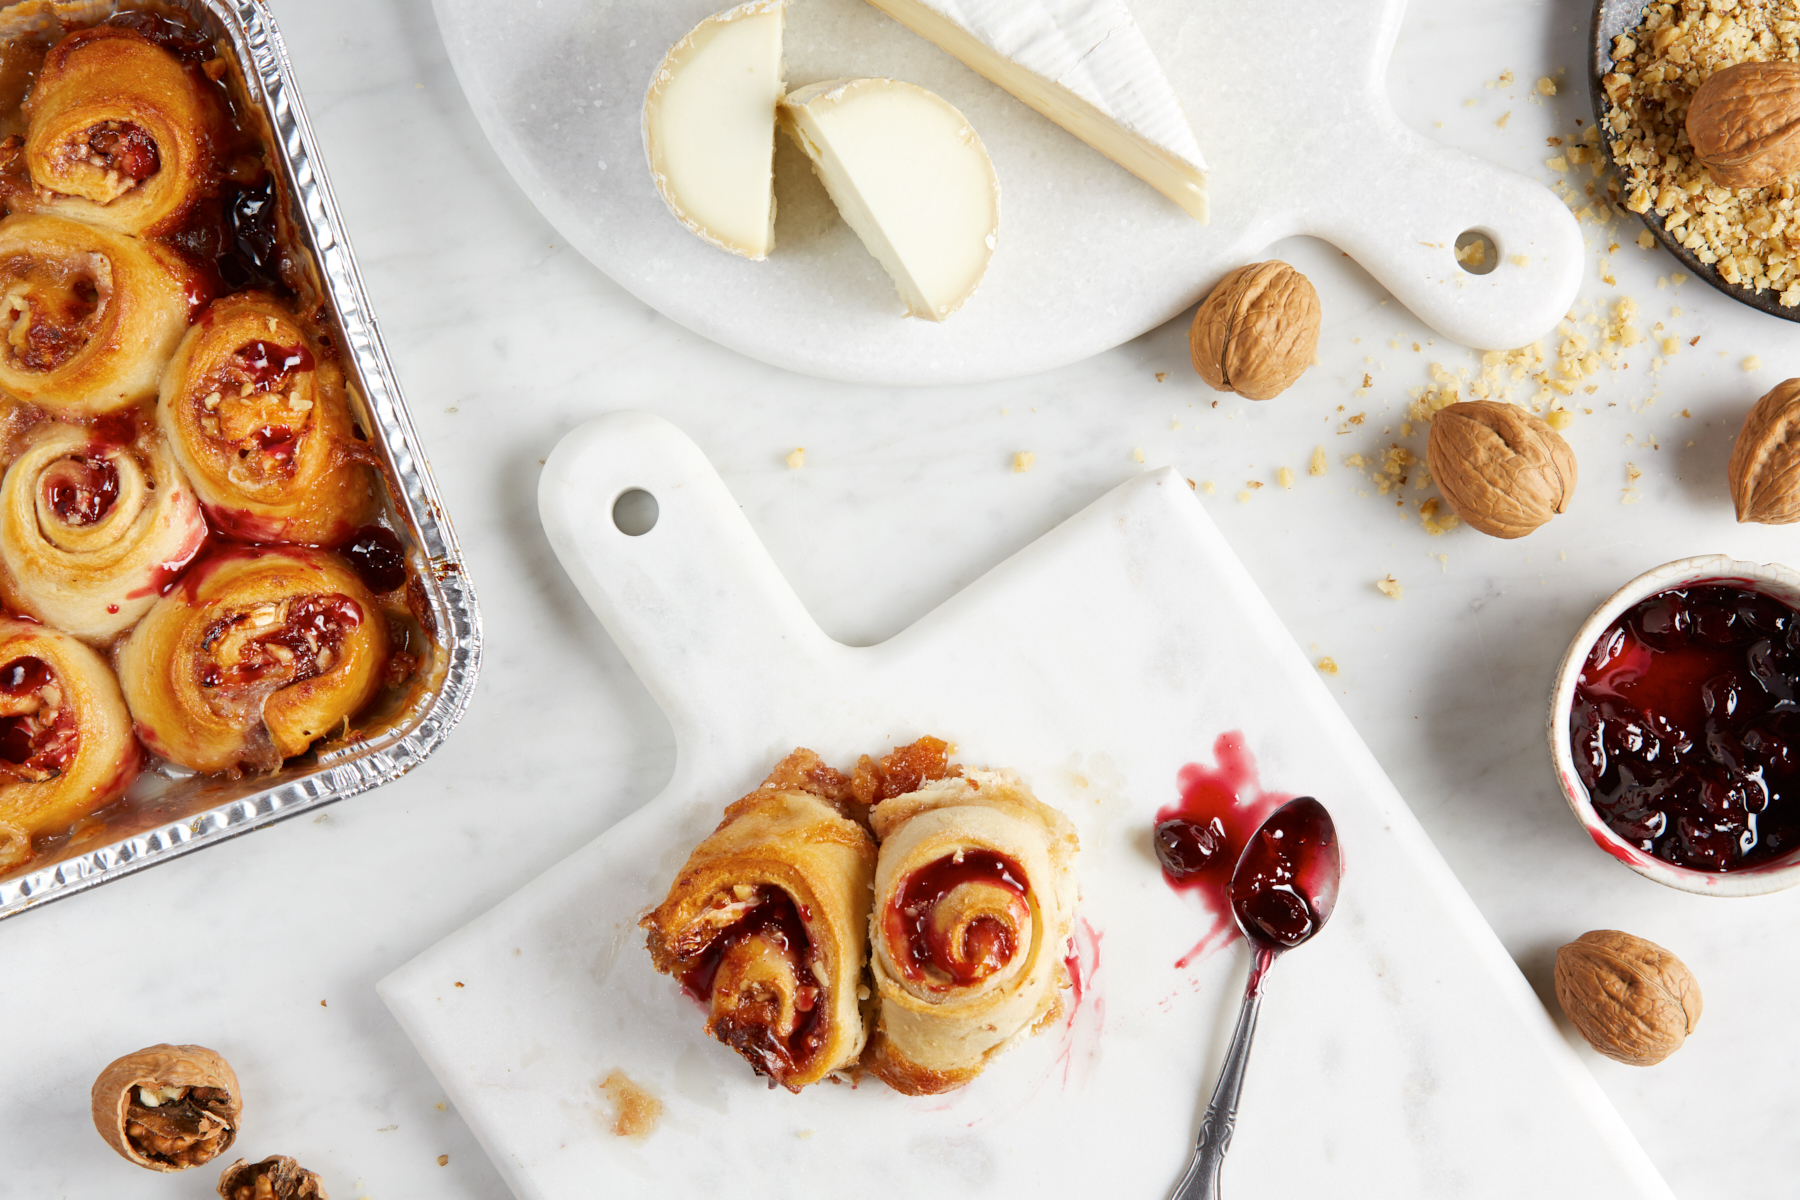 Baked Brie + Jam Rolls / Reynolds Kitchen